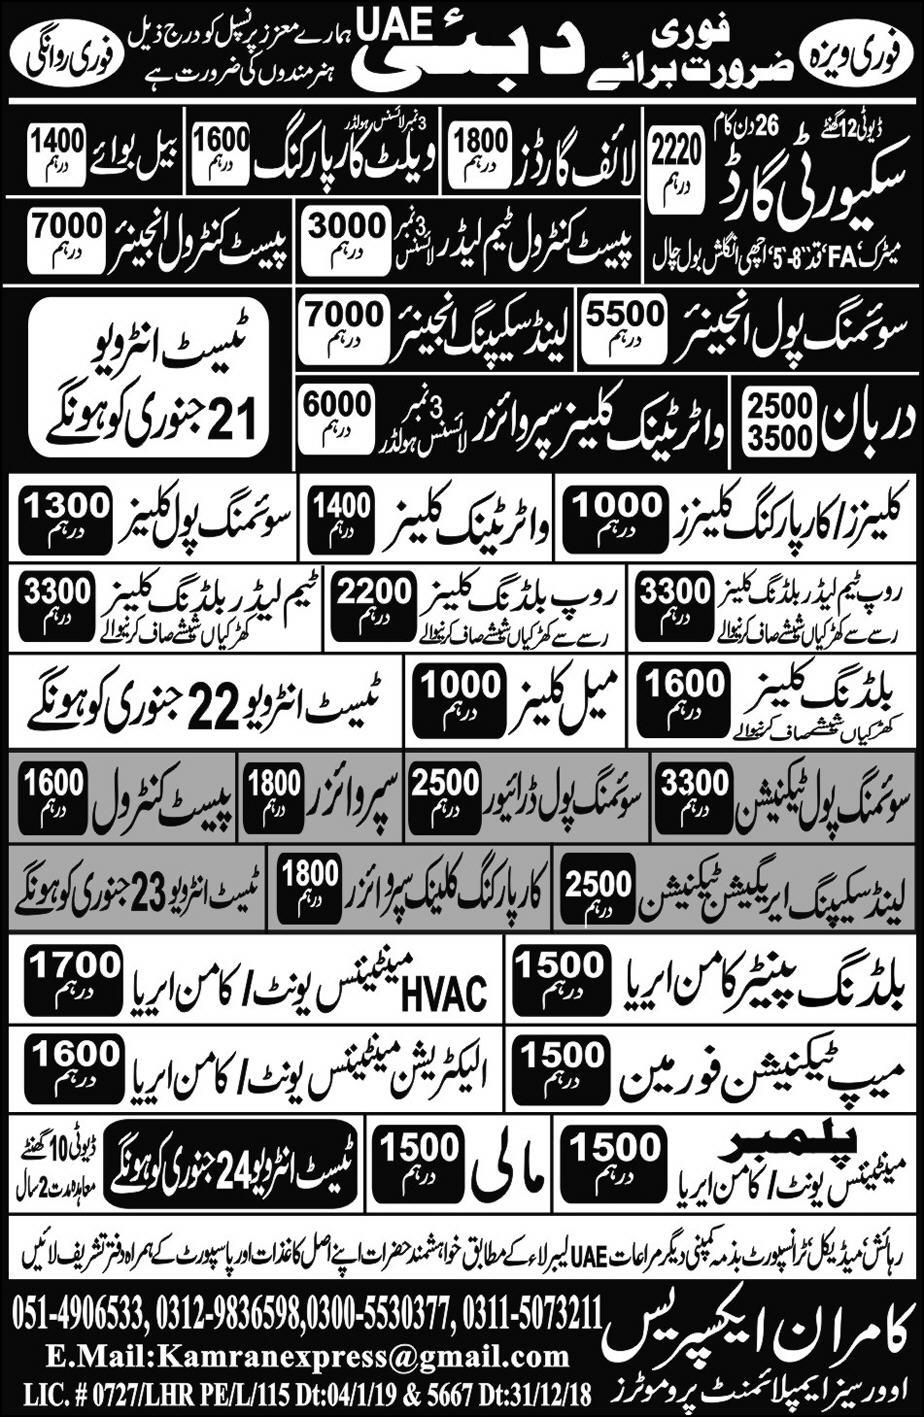 UAE jobs , UAE Jobs 2019 , Dubai Jobs 2019, Dubai Jobs for Pakistani, Jobs in Dubai 2019